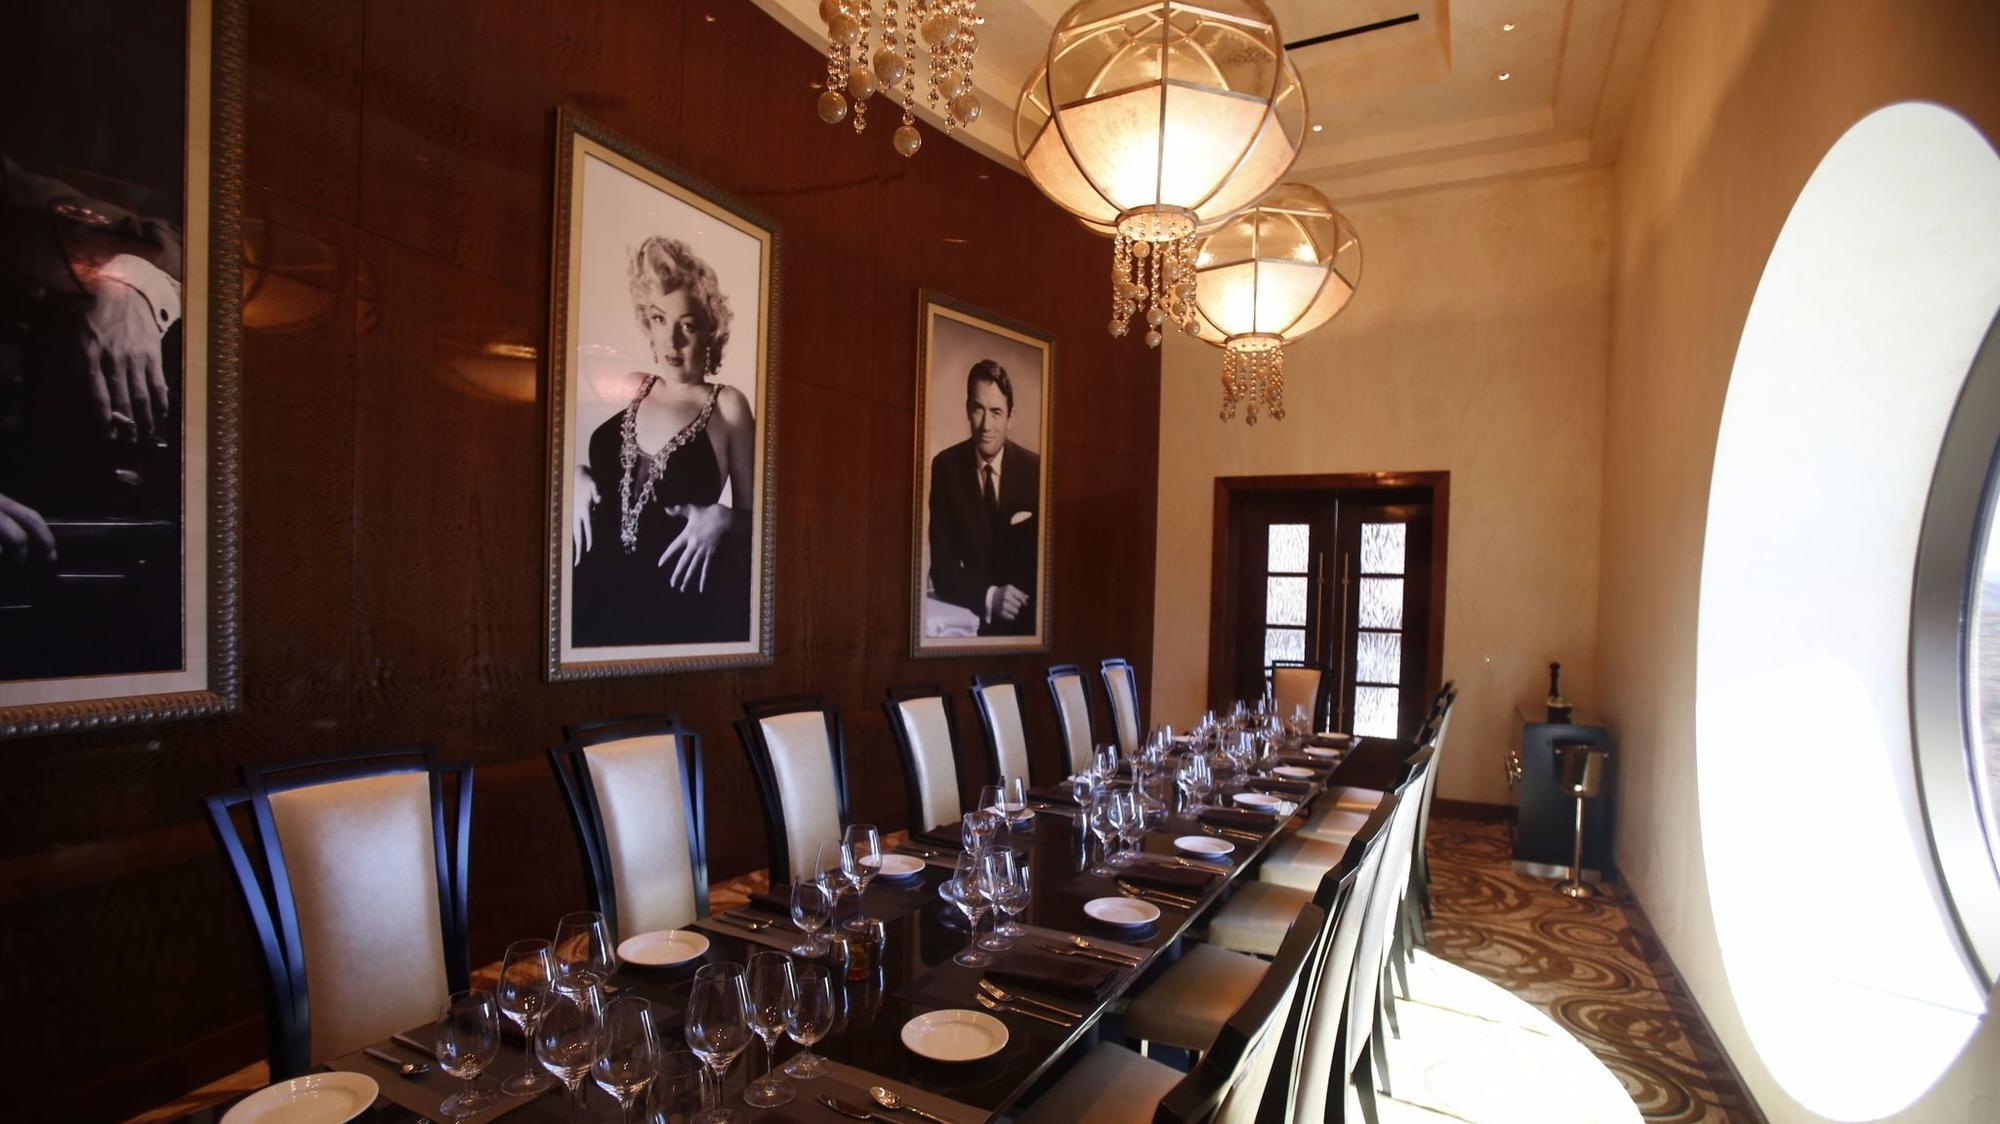 San Diego Area Casinosu0027 Private Dining Rooms Serve Secluded Elegance   The  San Diego Union Tribune